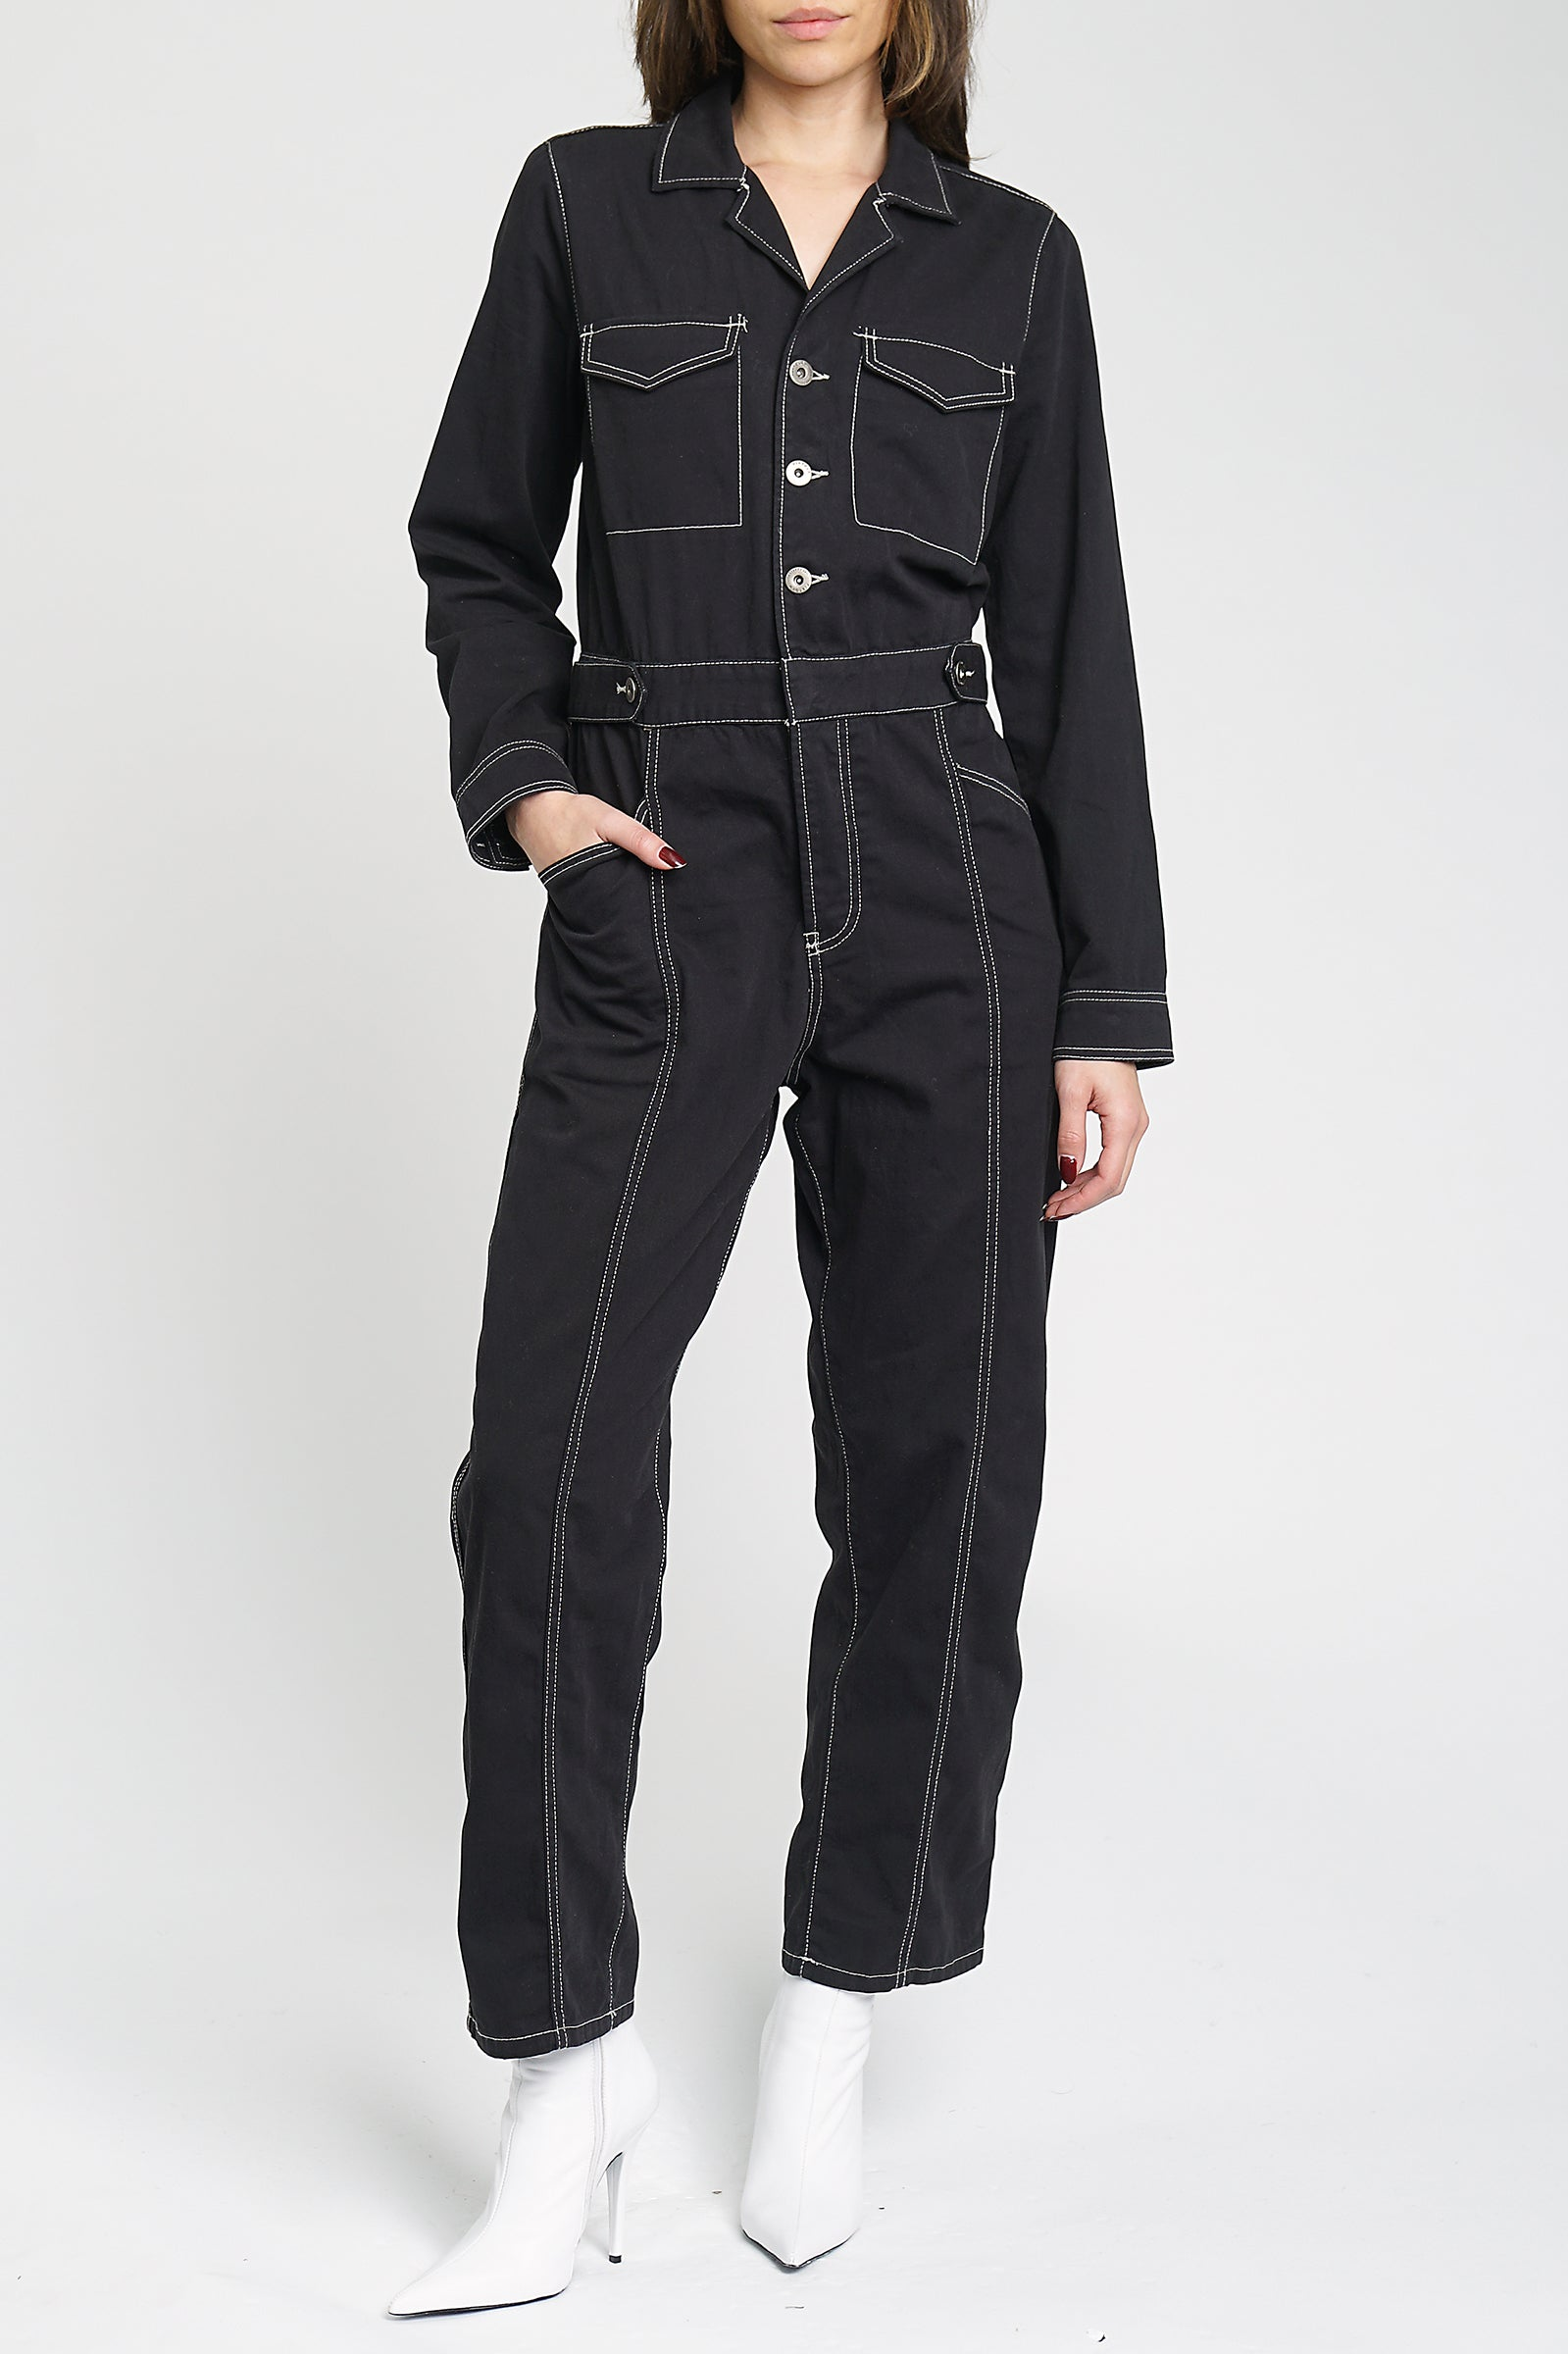 Reagan Long Sleeve Jumpsuit With Contrast Stitching - Onyx